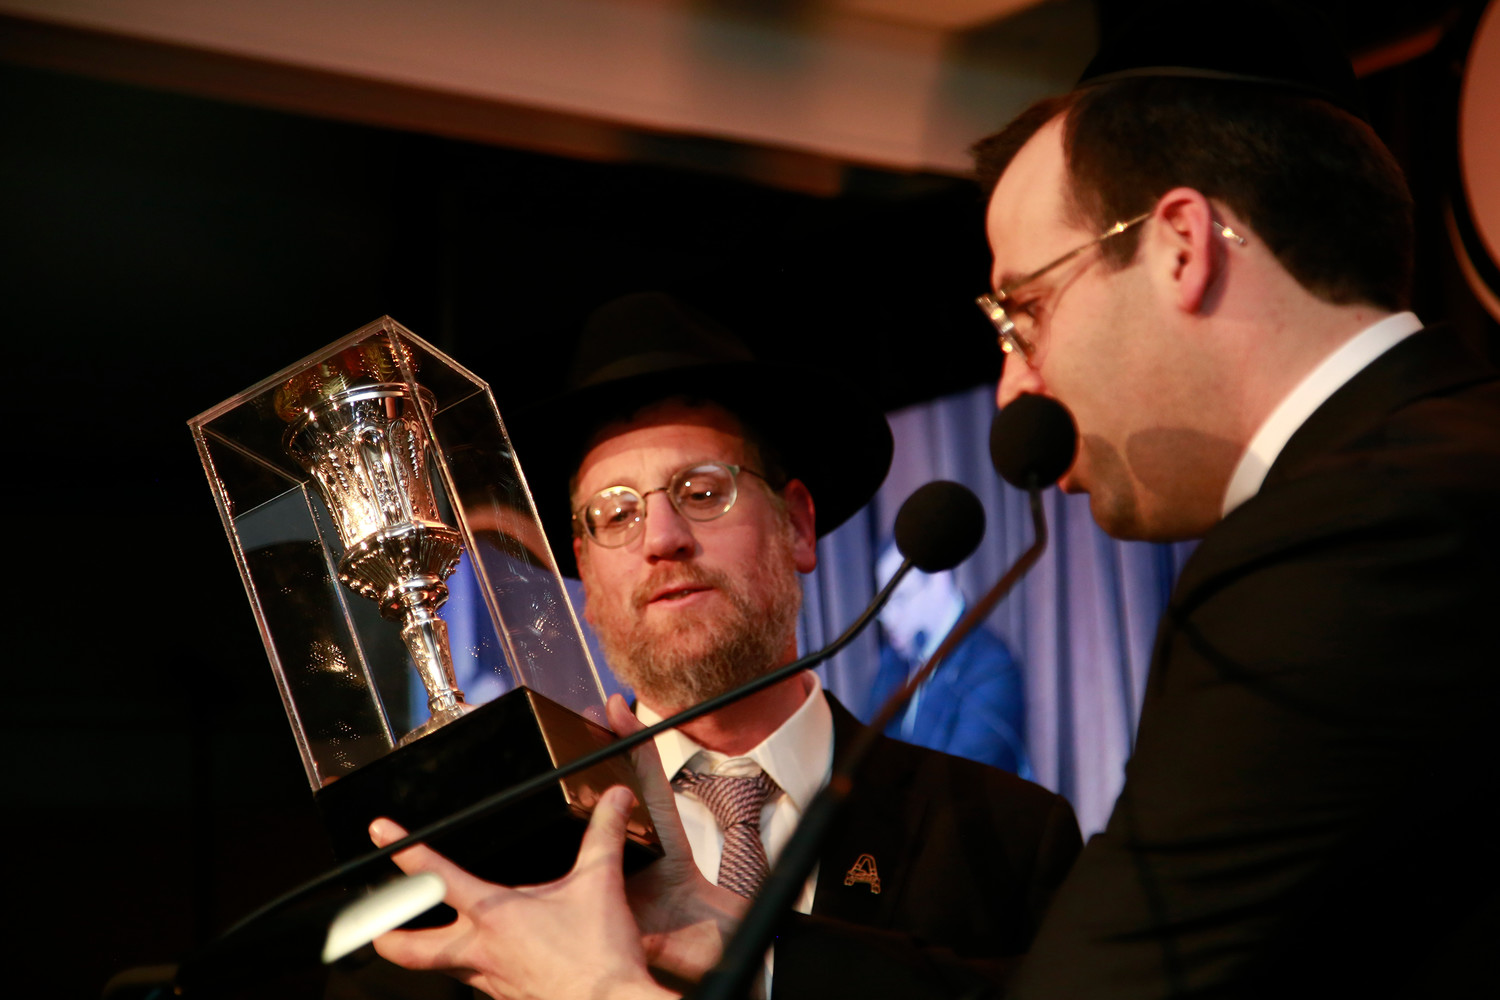 Rabbi Boruch Ber Bender presents Yossi Ungar with the Pillars of Chesed Award.